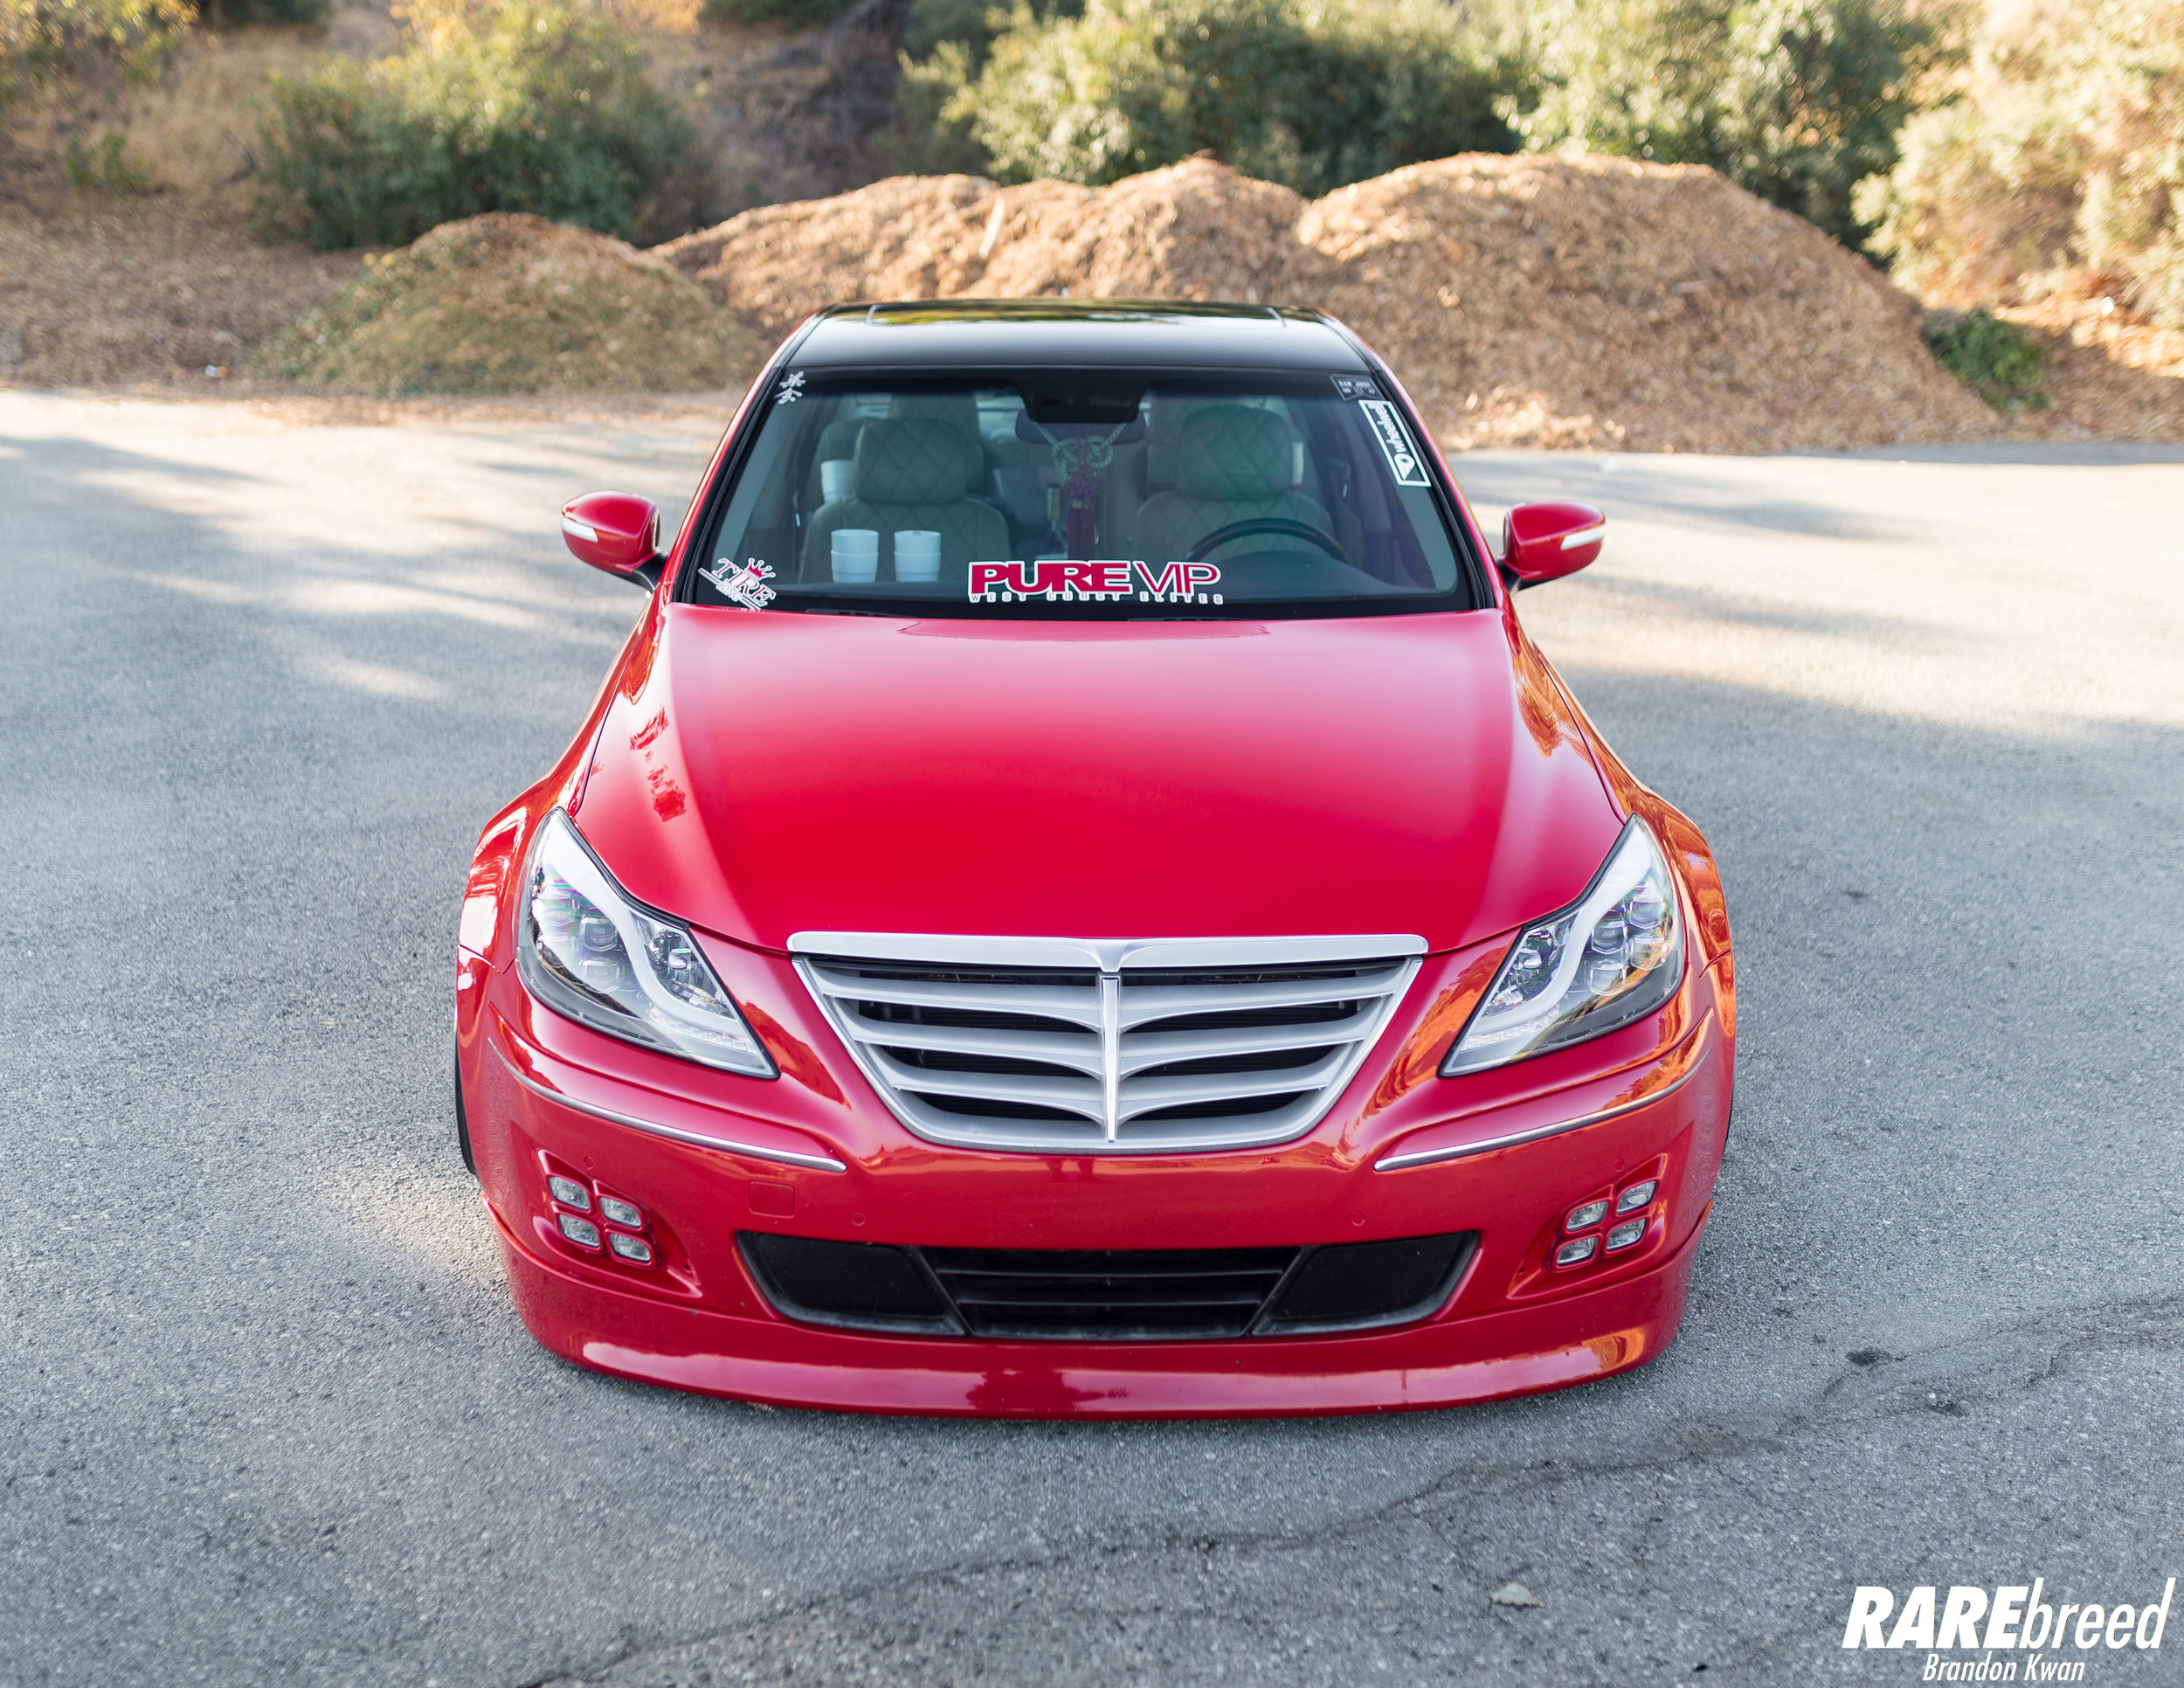 hight resolution of shaun s 2011 hyundai genesis prada pure vip